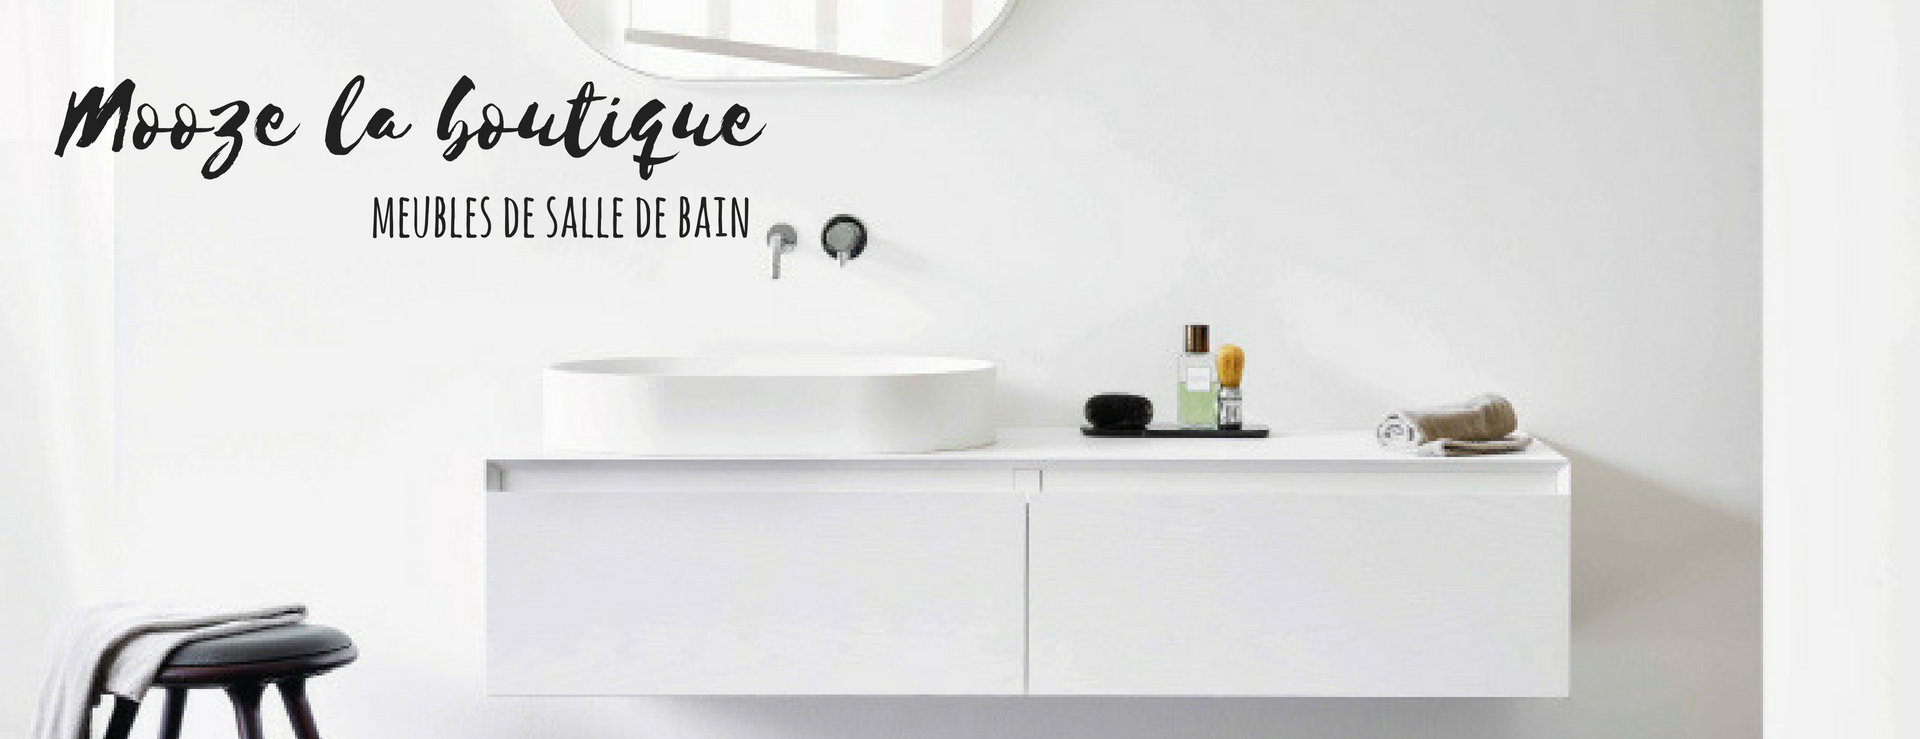 meubles salle de bain haut de gamme mooze la boutique. Black Bedroom Furniture Sets. Home Design Ideas